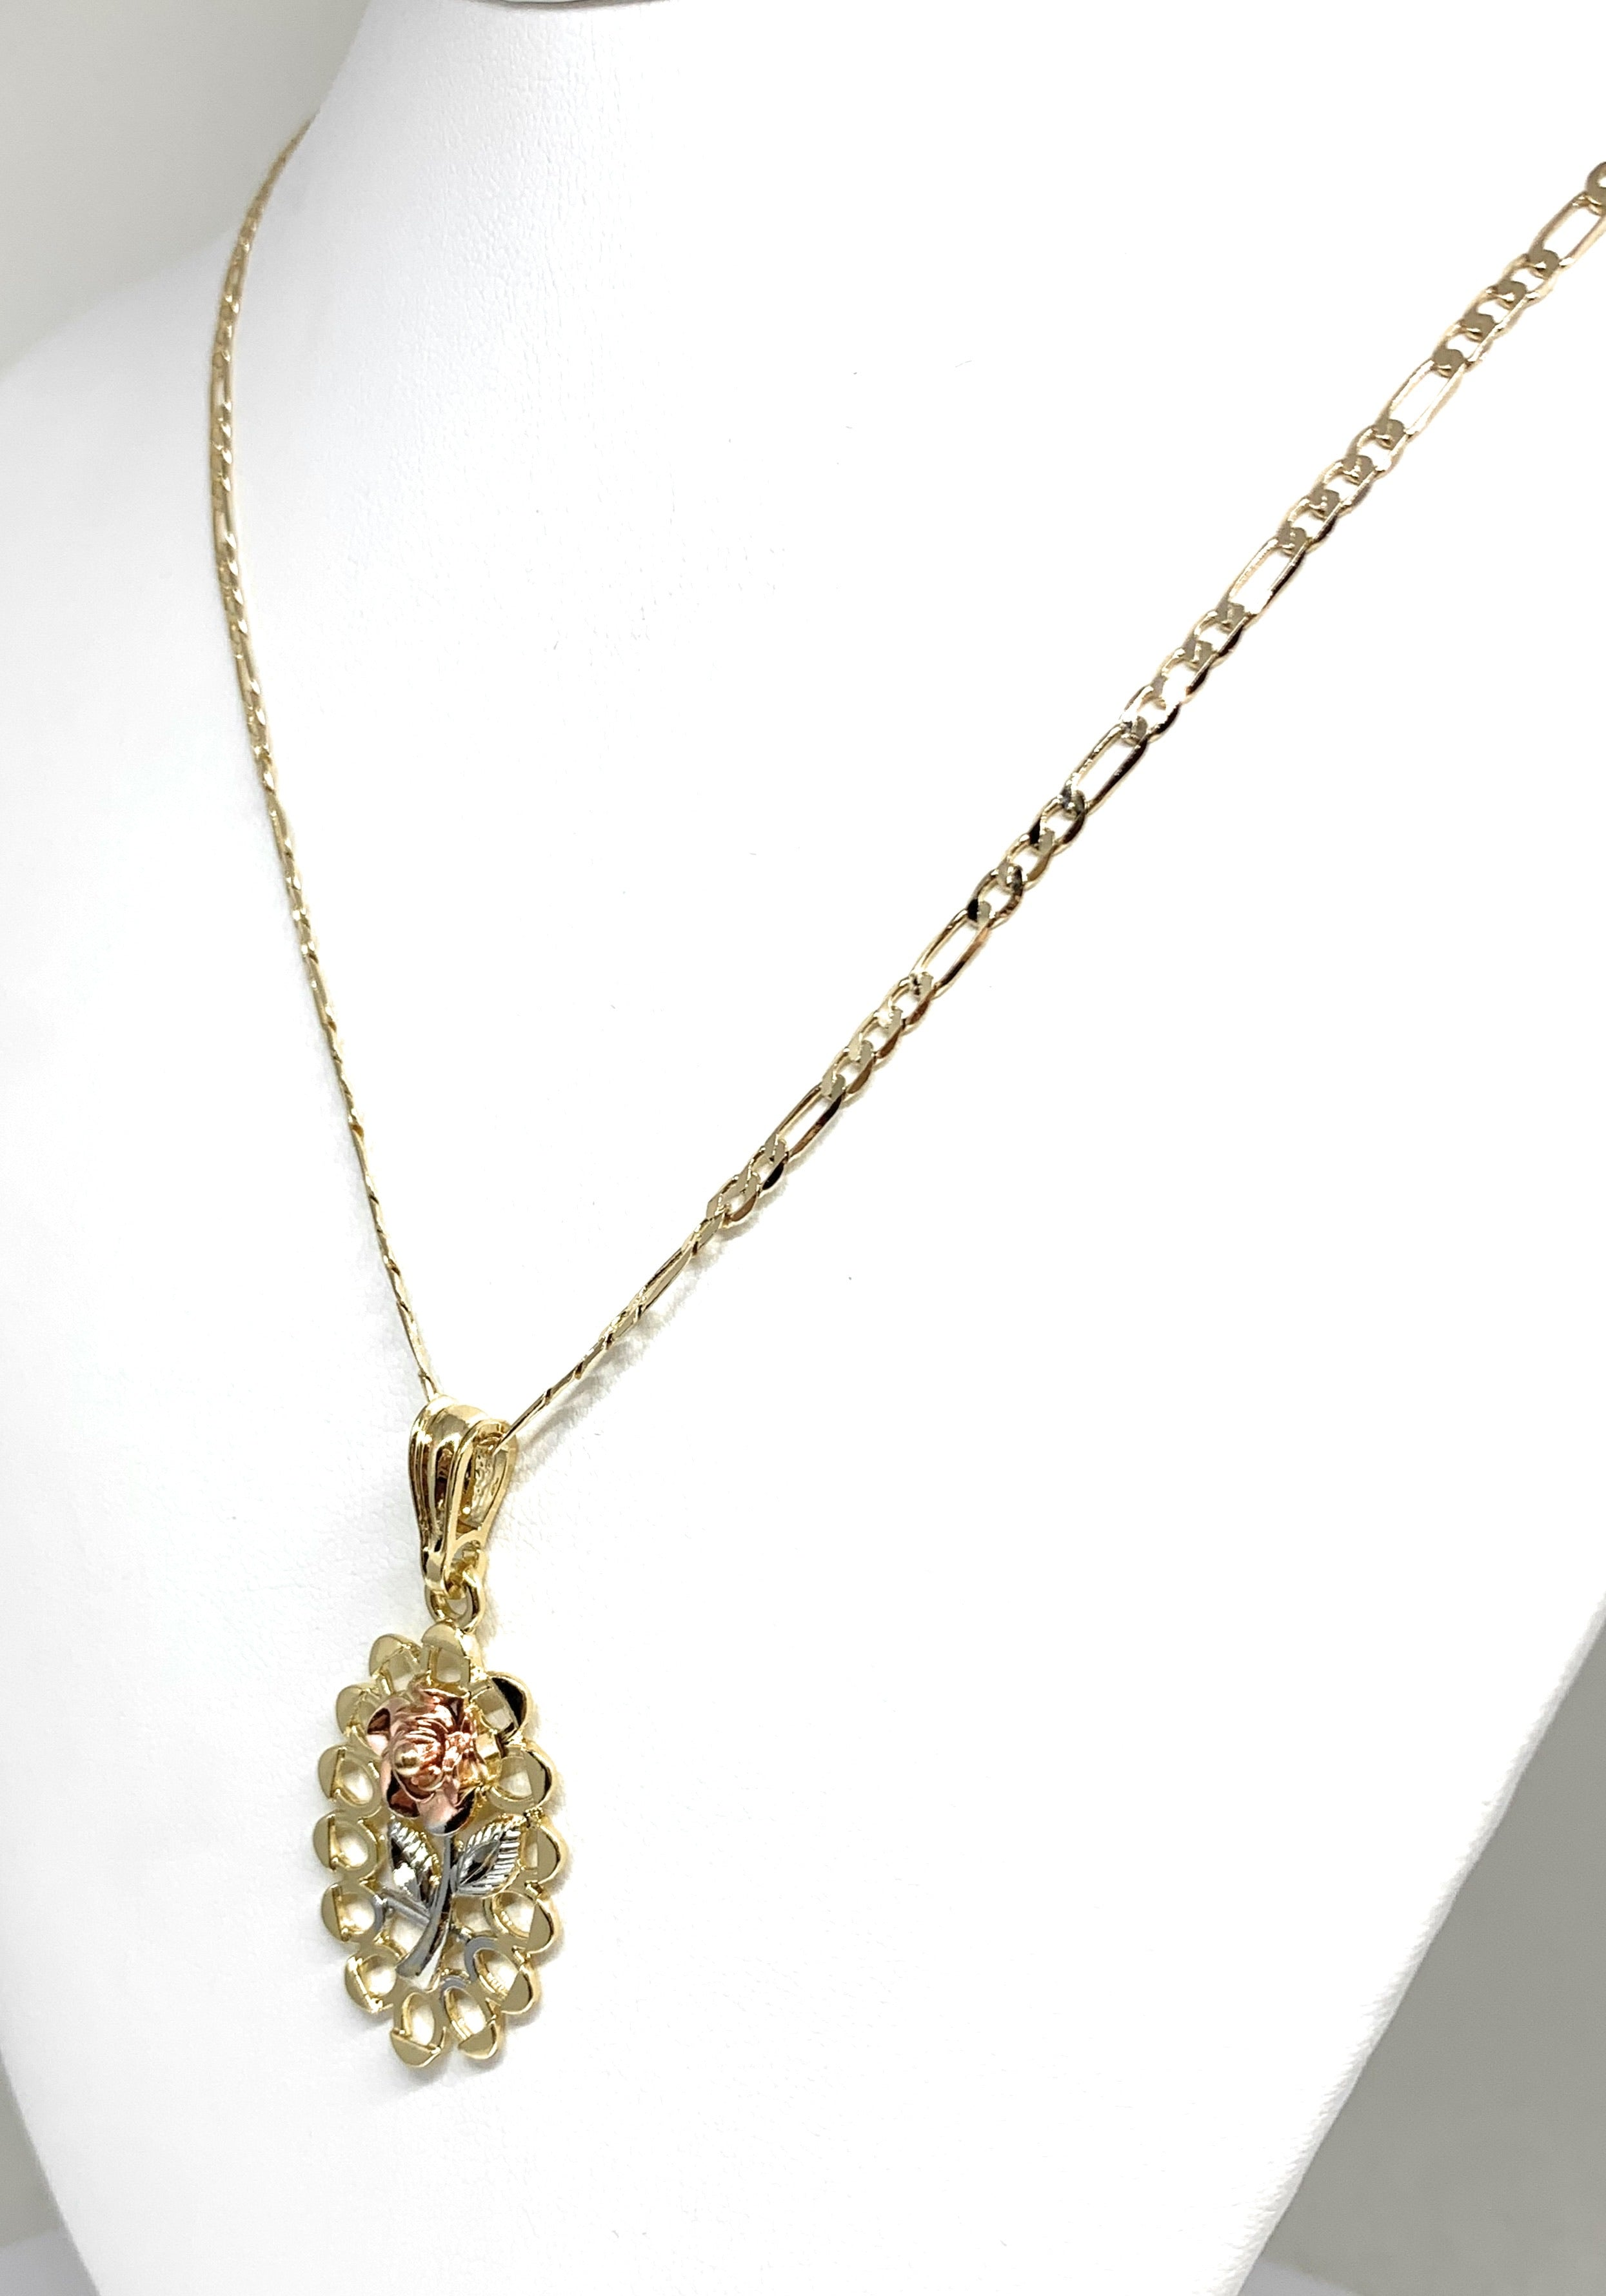 "Gold Plated Tri-Color Oval Rose Pendant Necklace Chain 24"" Flor Pendant"